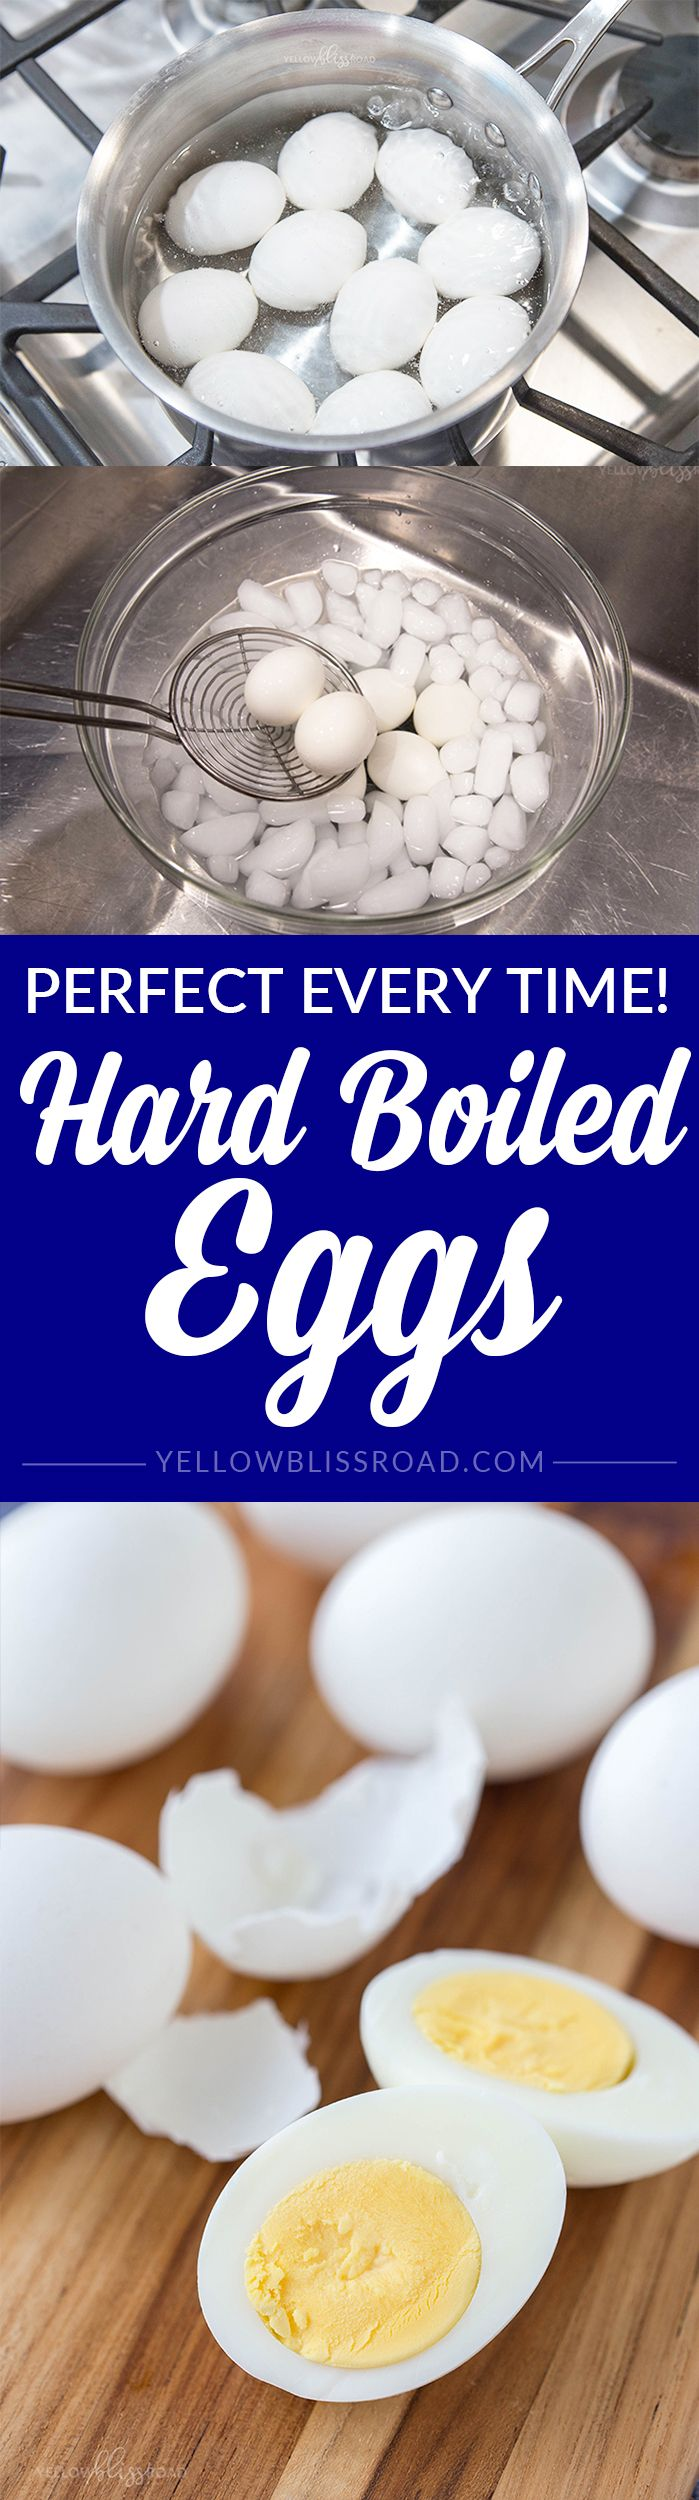 Hard Boiled Eggs - Perfectly Cooked Every Time!